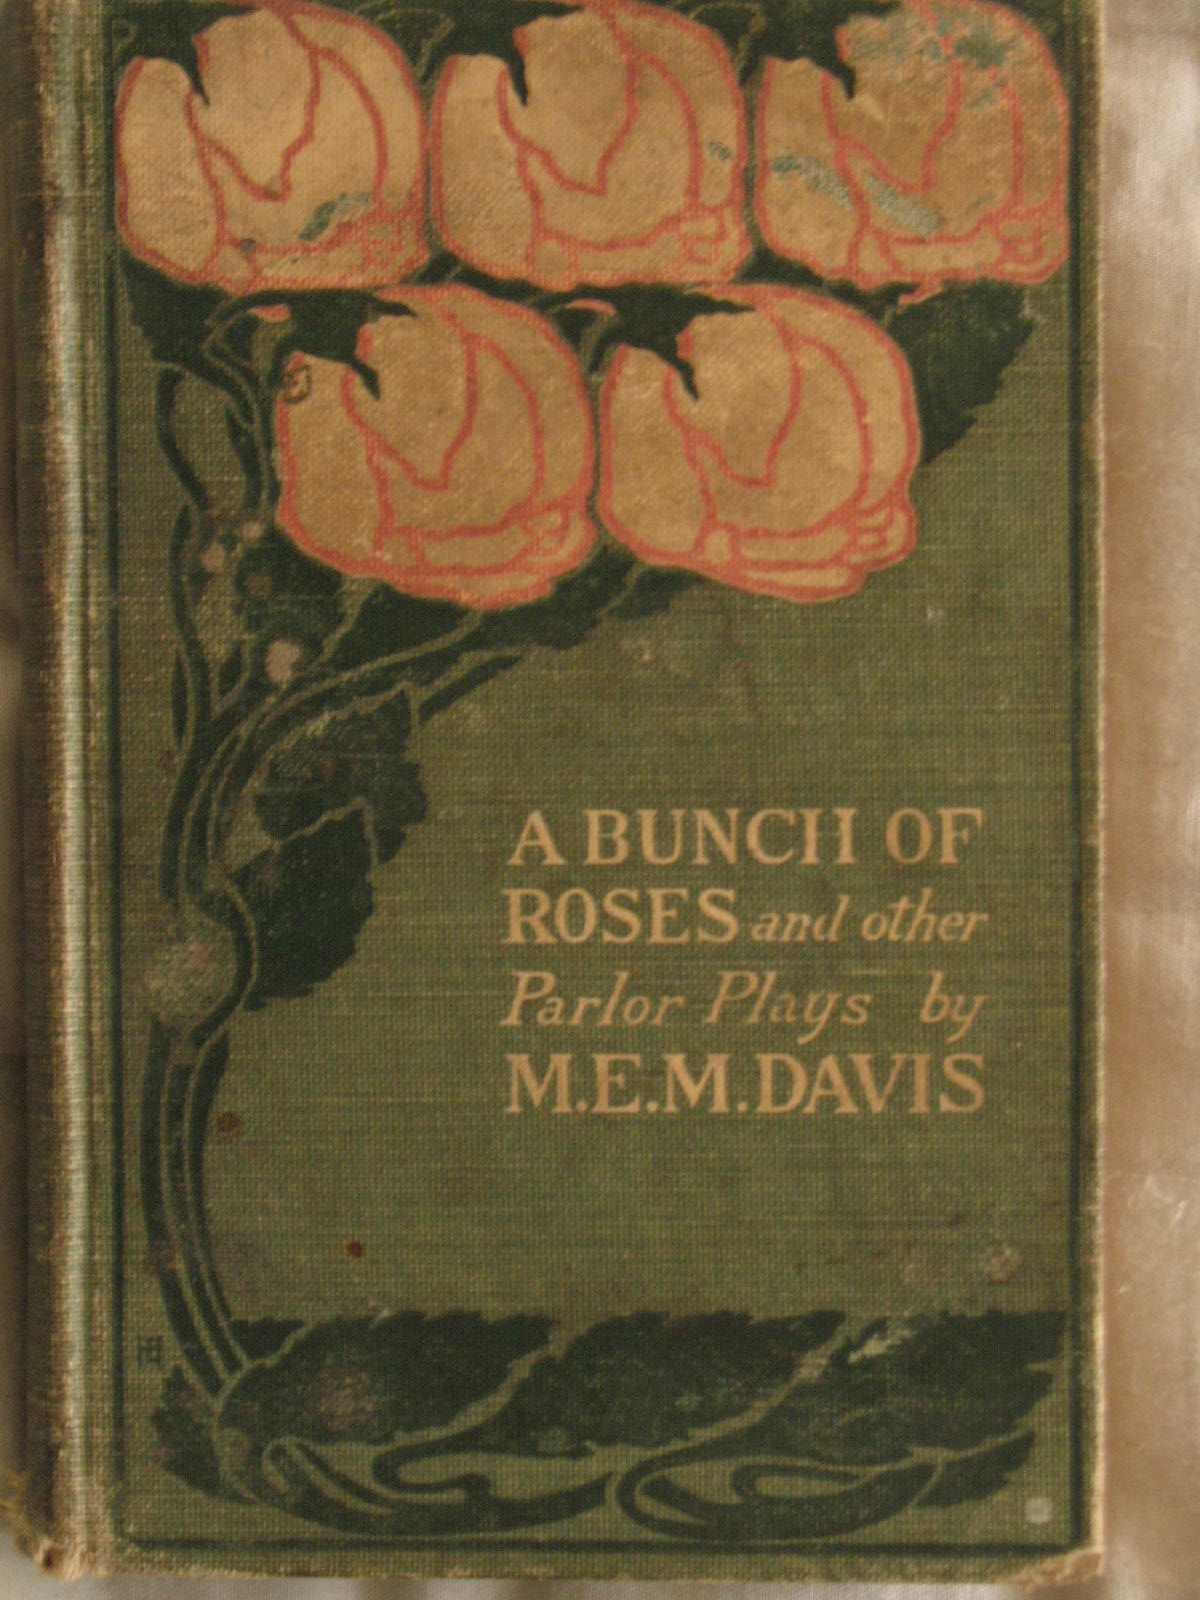 Beautiful Old Book Covers ~ Vintage book cover beautiful antique covers